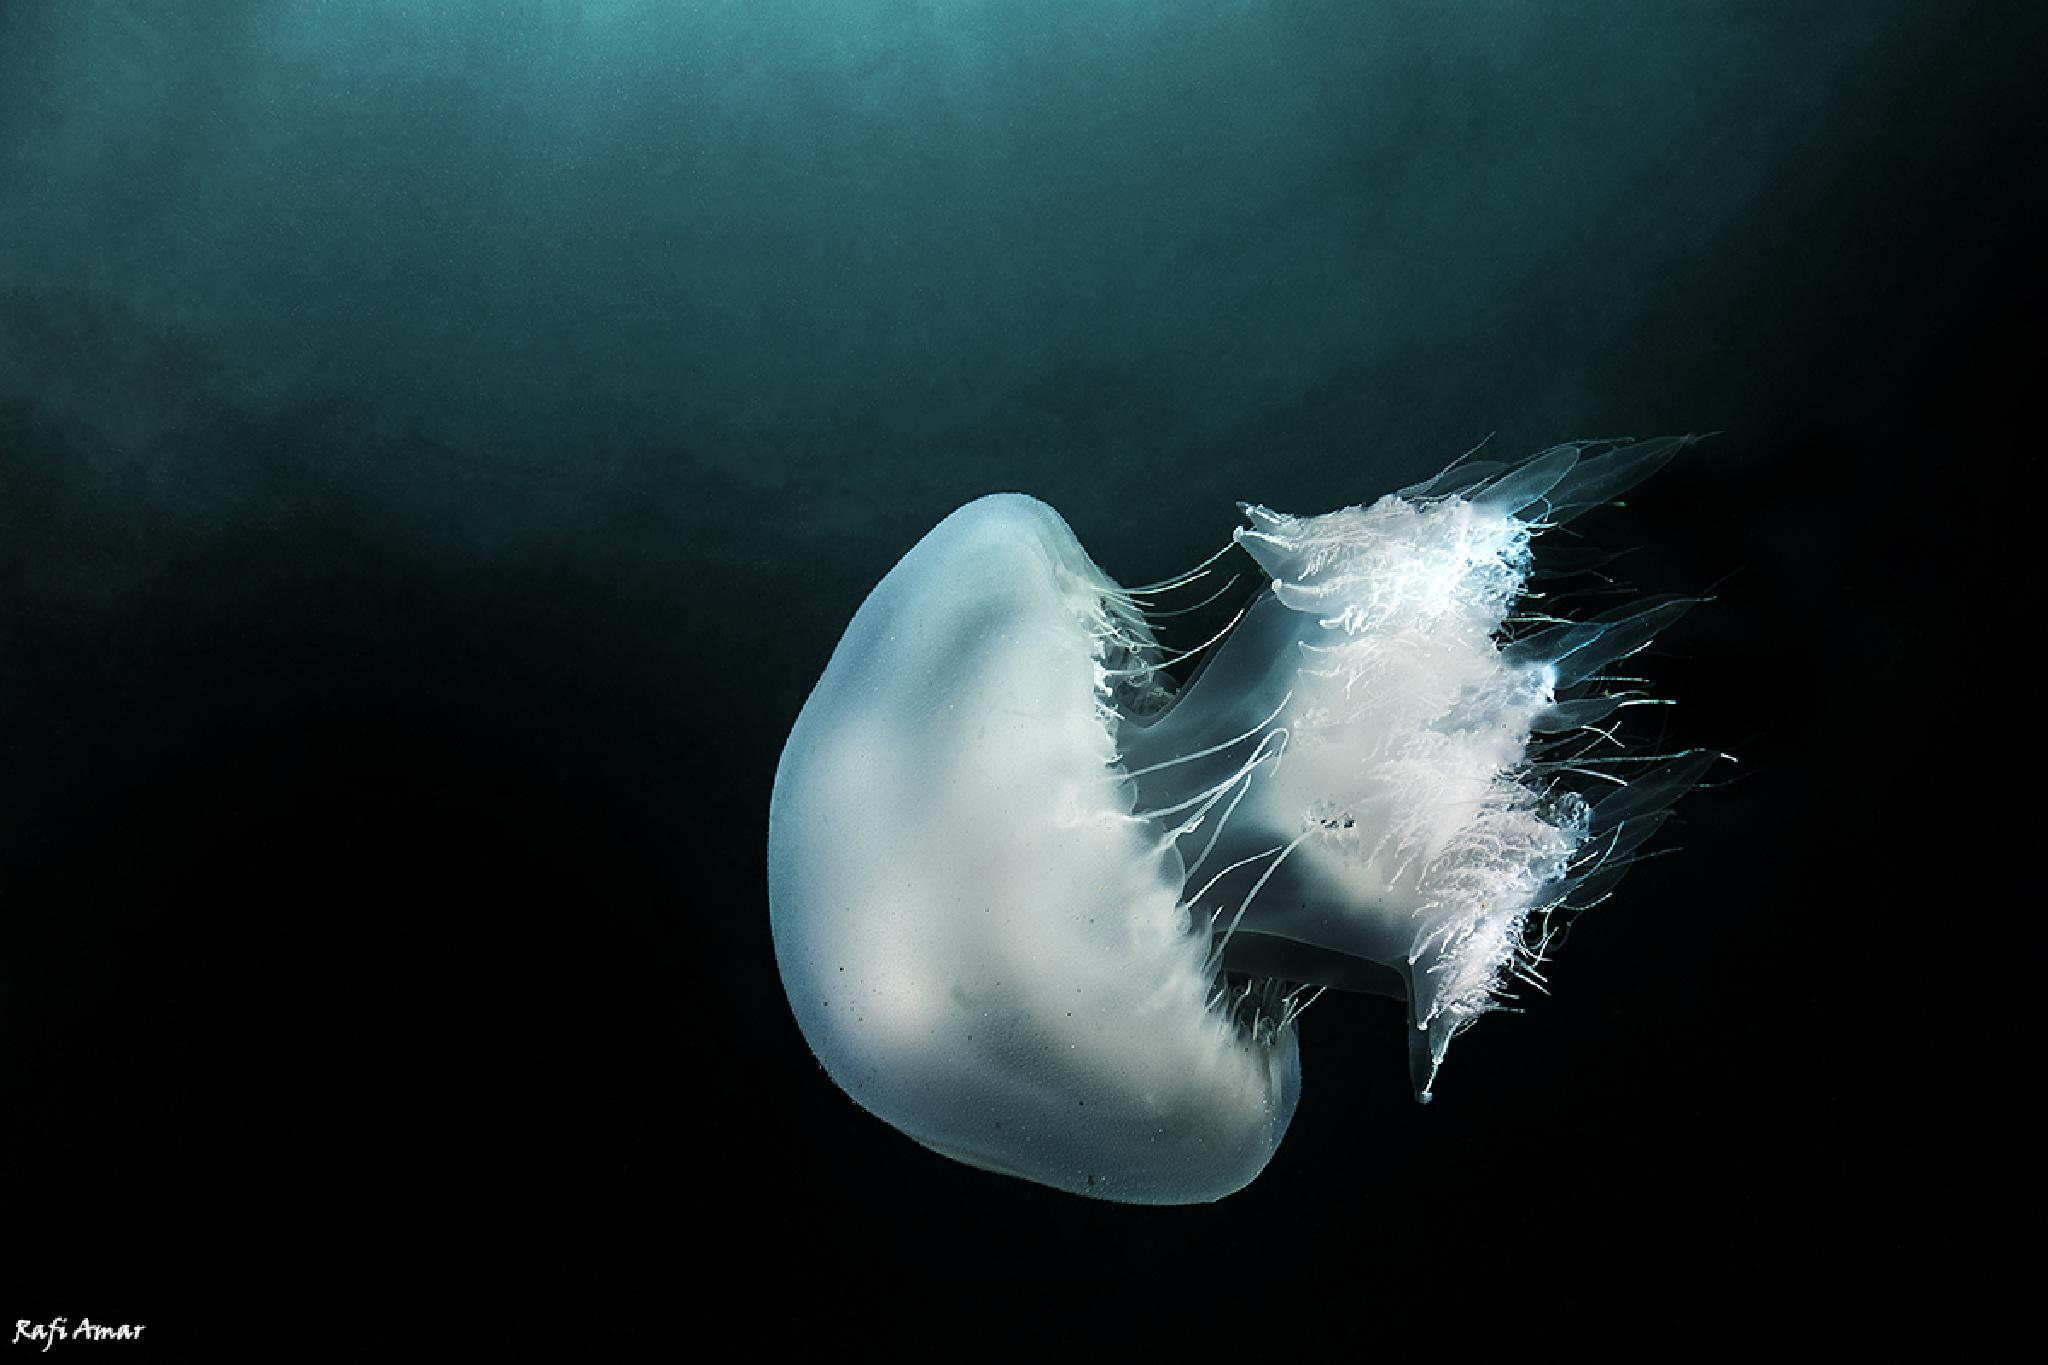 Jellyfish by rafi amar